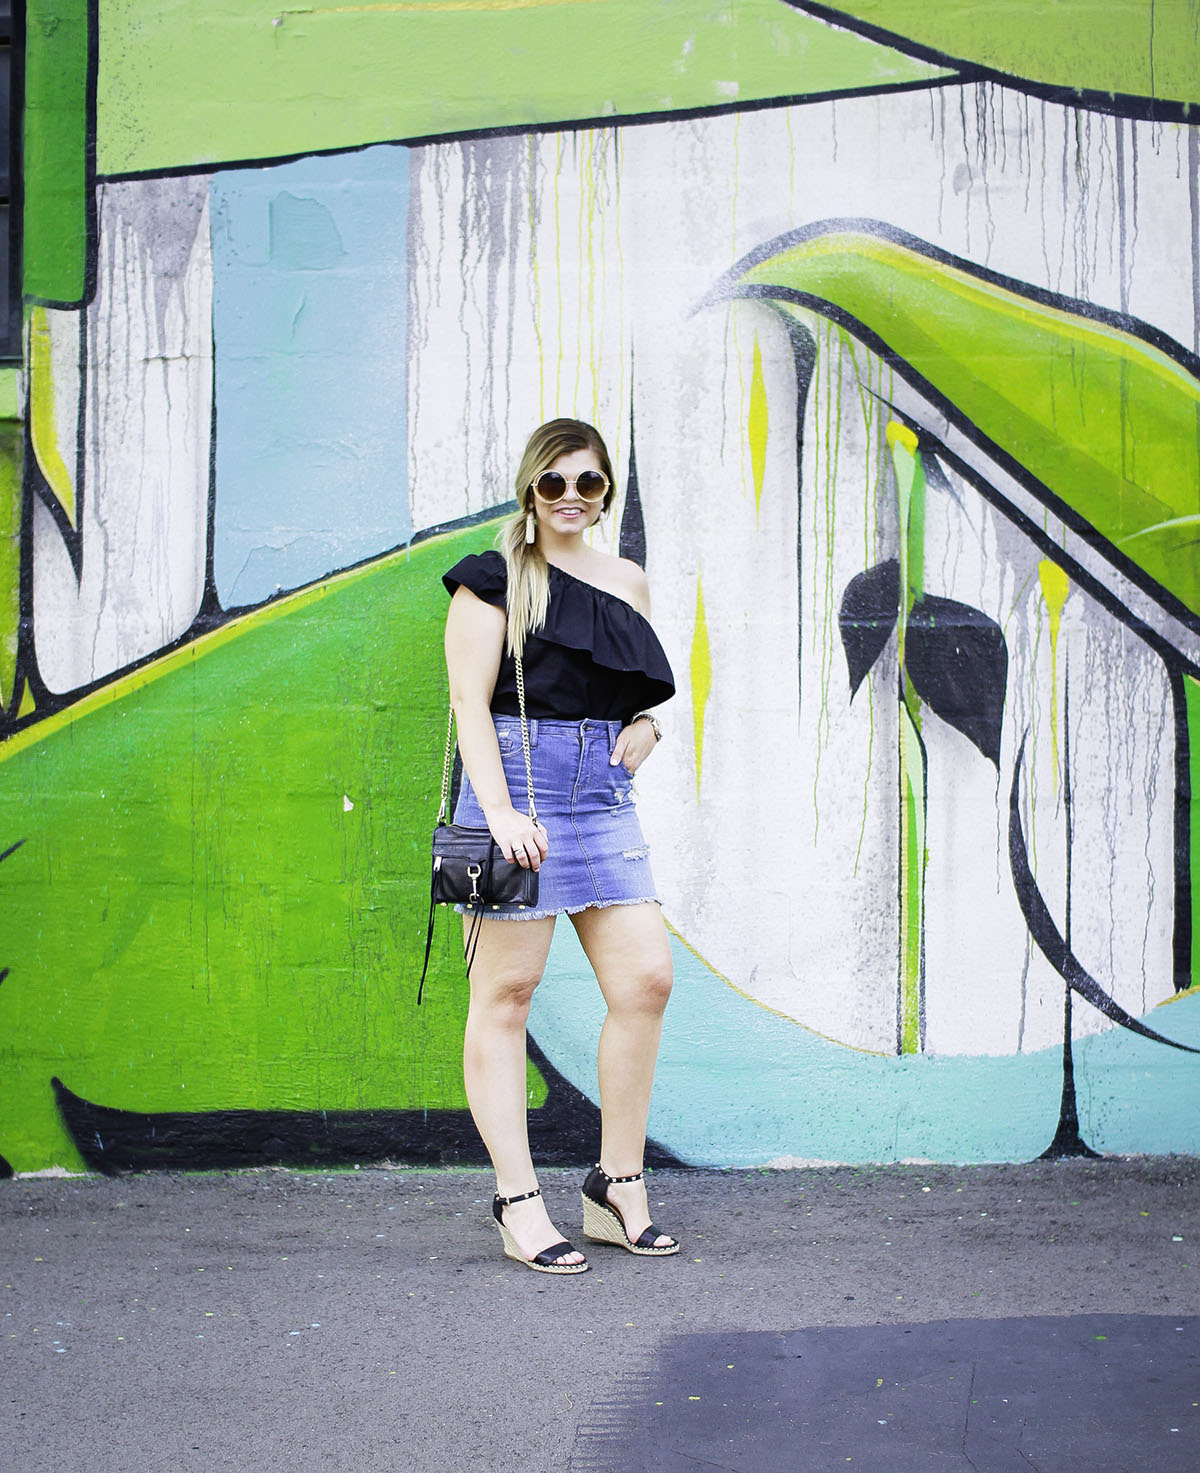 Lacey Anne Douthat from The Glitter Gospel Blog, Asos Black One Shoulder Top, One Shoulder Top, Denim Skirt, Rebecca Minkoff Mini Mac, Summer Outfits, Tassel Earrings, Round Sunglasses, Espadrille Wedges, Nashville, Murals, The Gulch